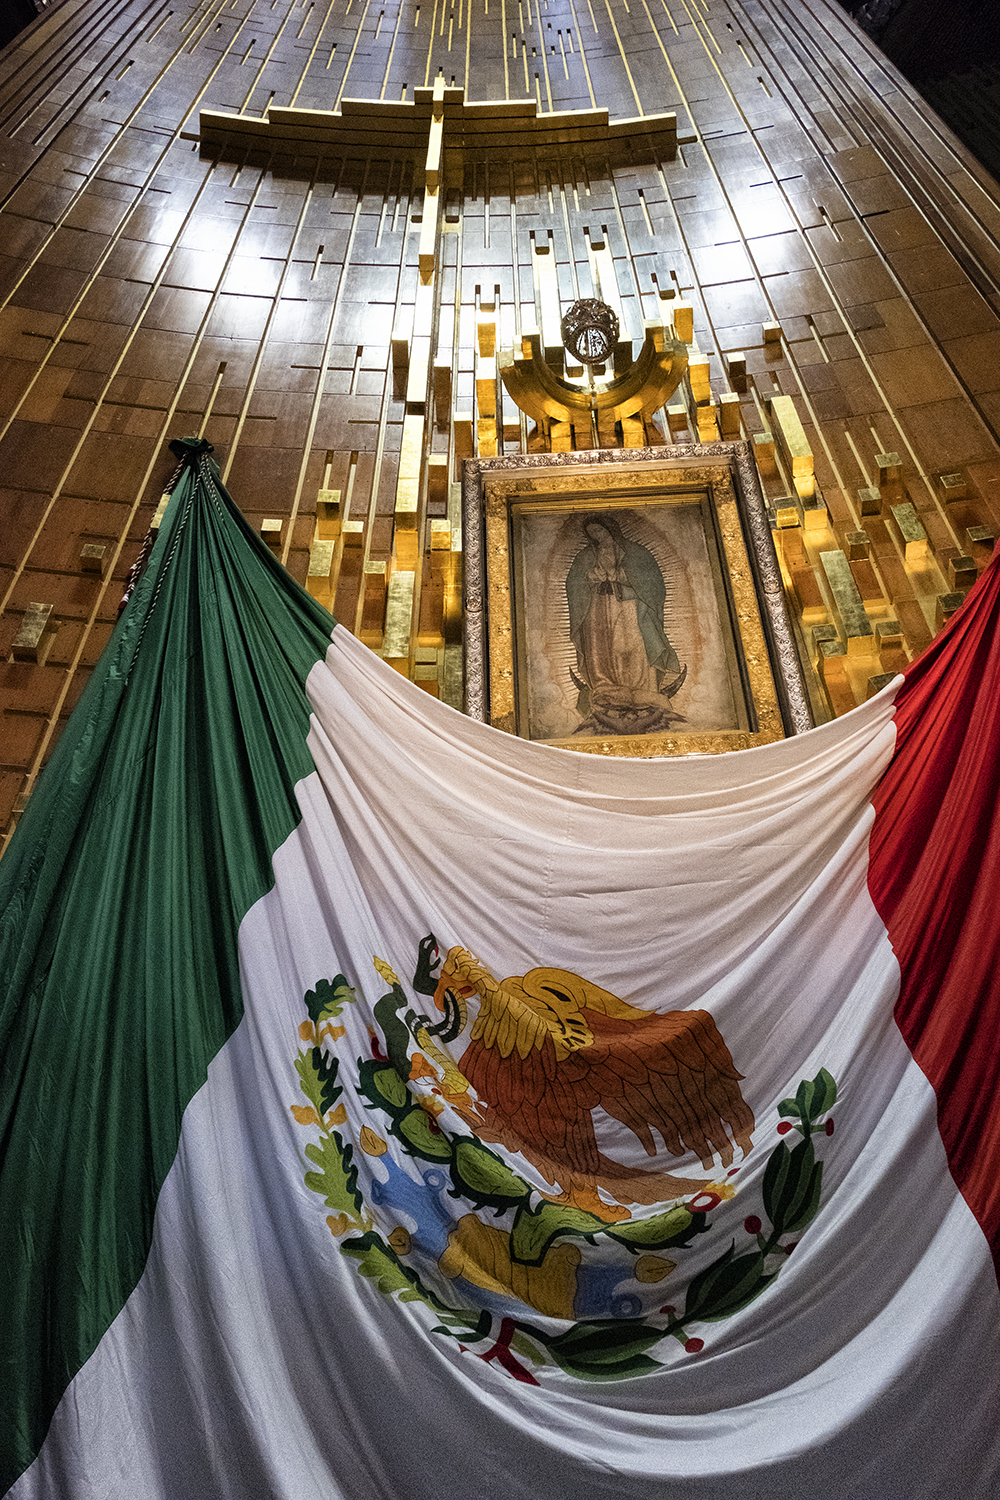 In the Basilica of Our Lady of Guadalupe, Mexico City